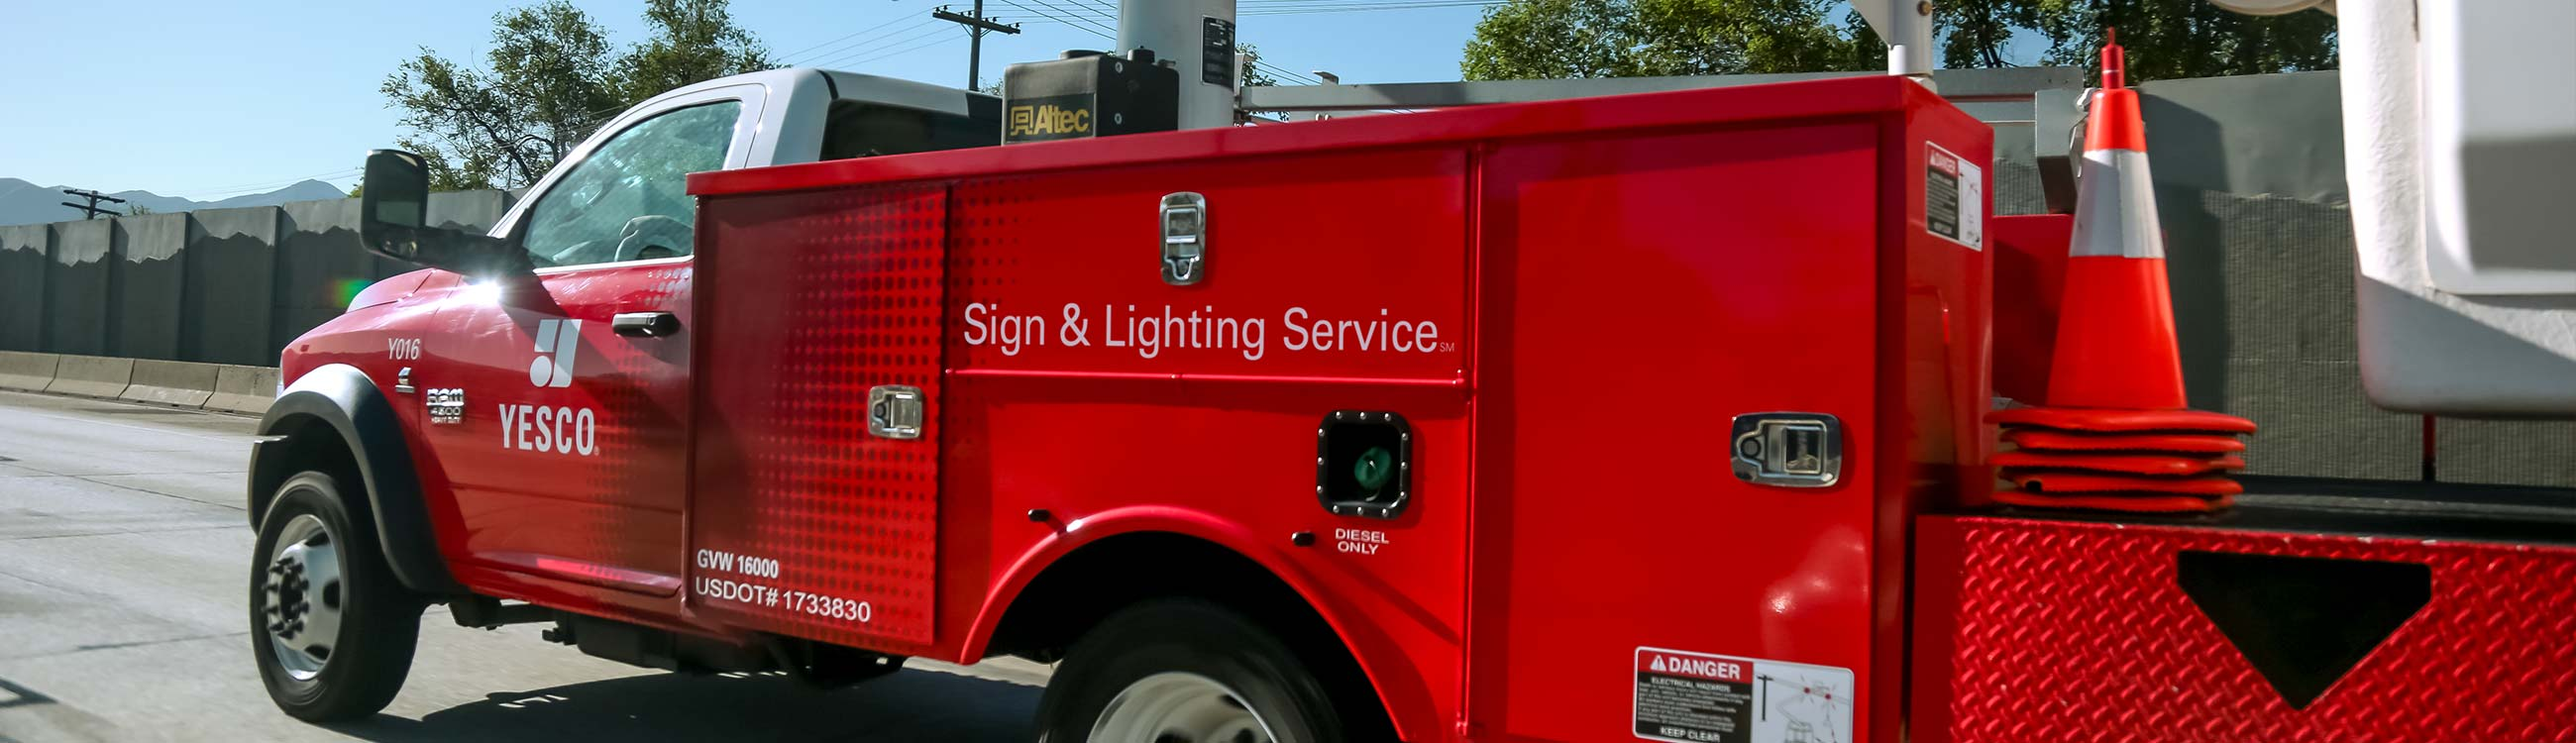 Sign & Lighting Service Elko